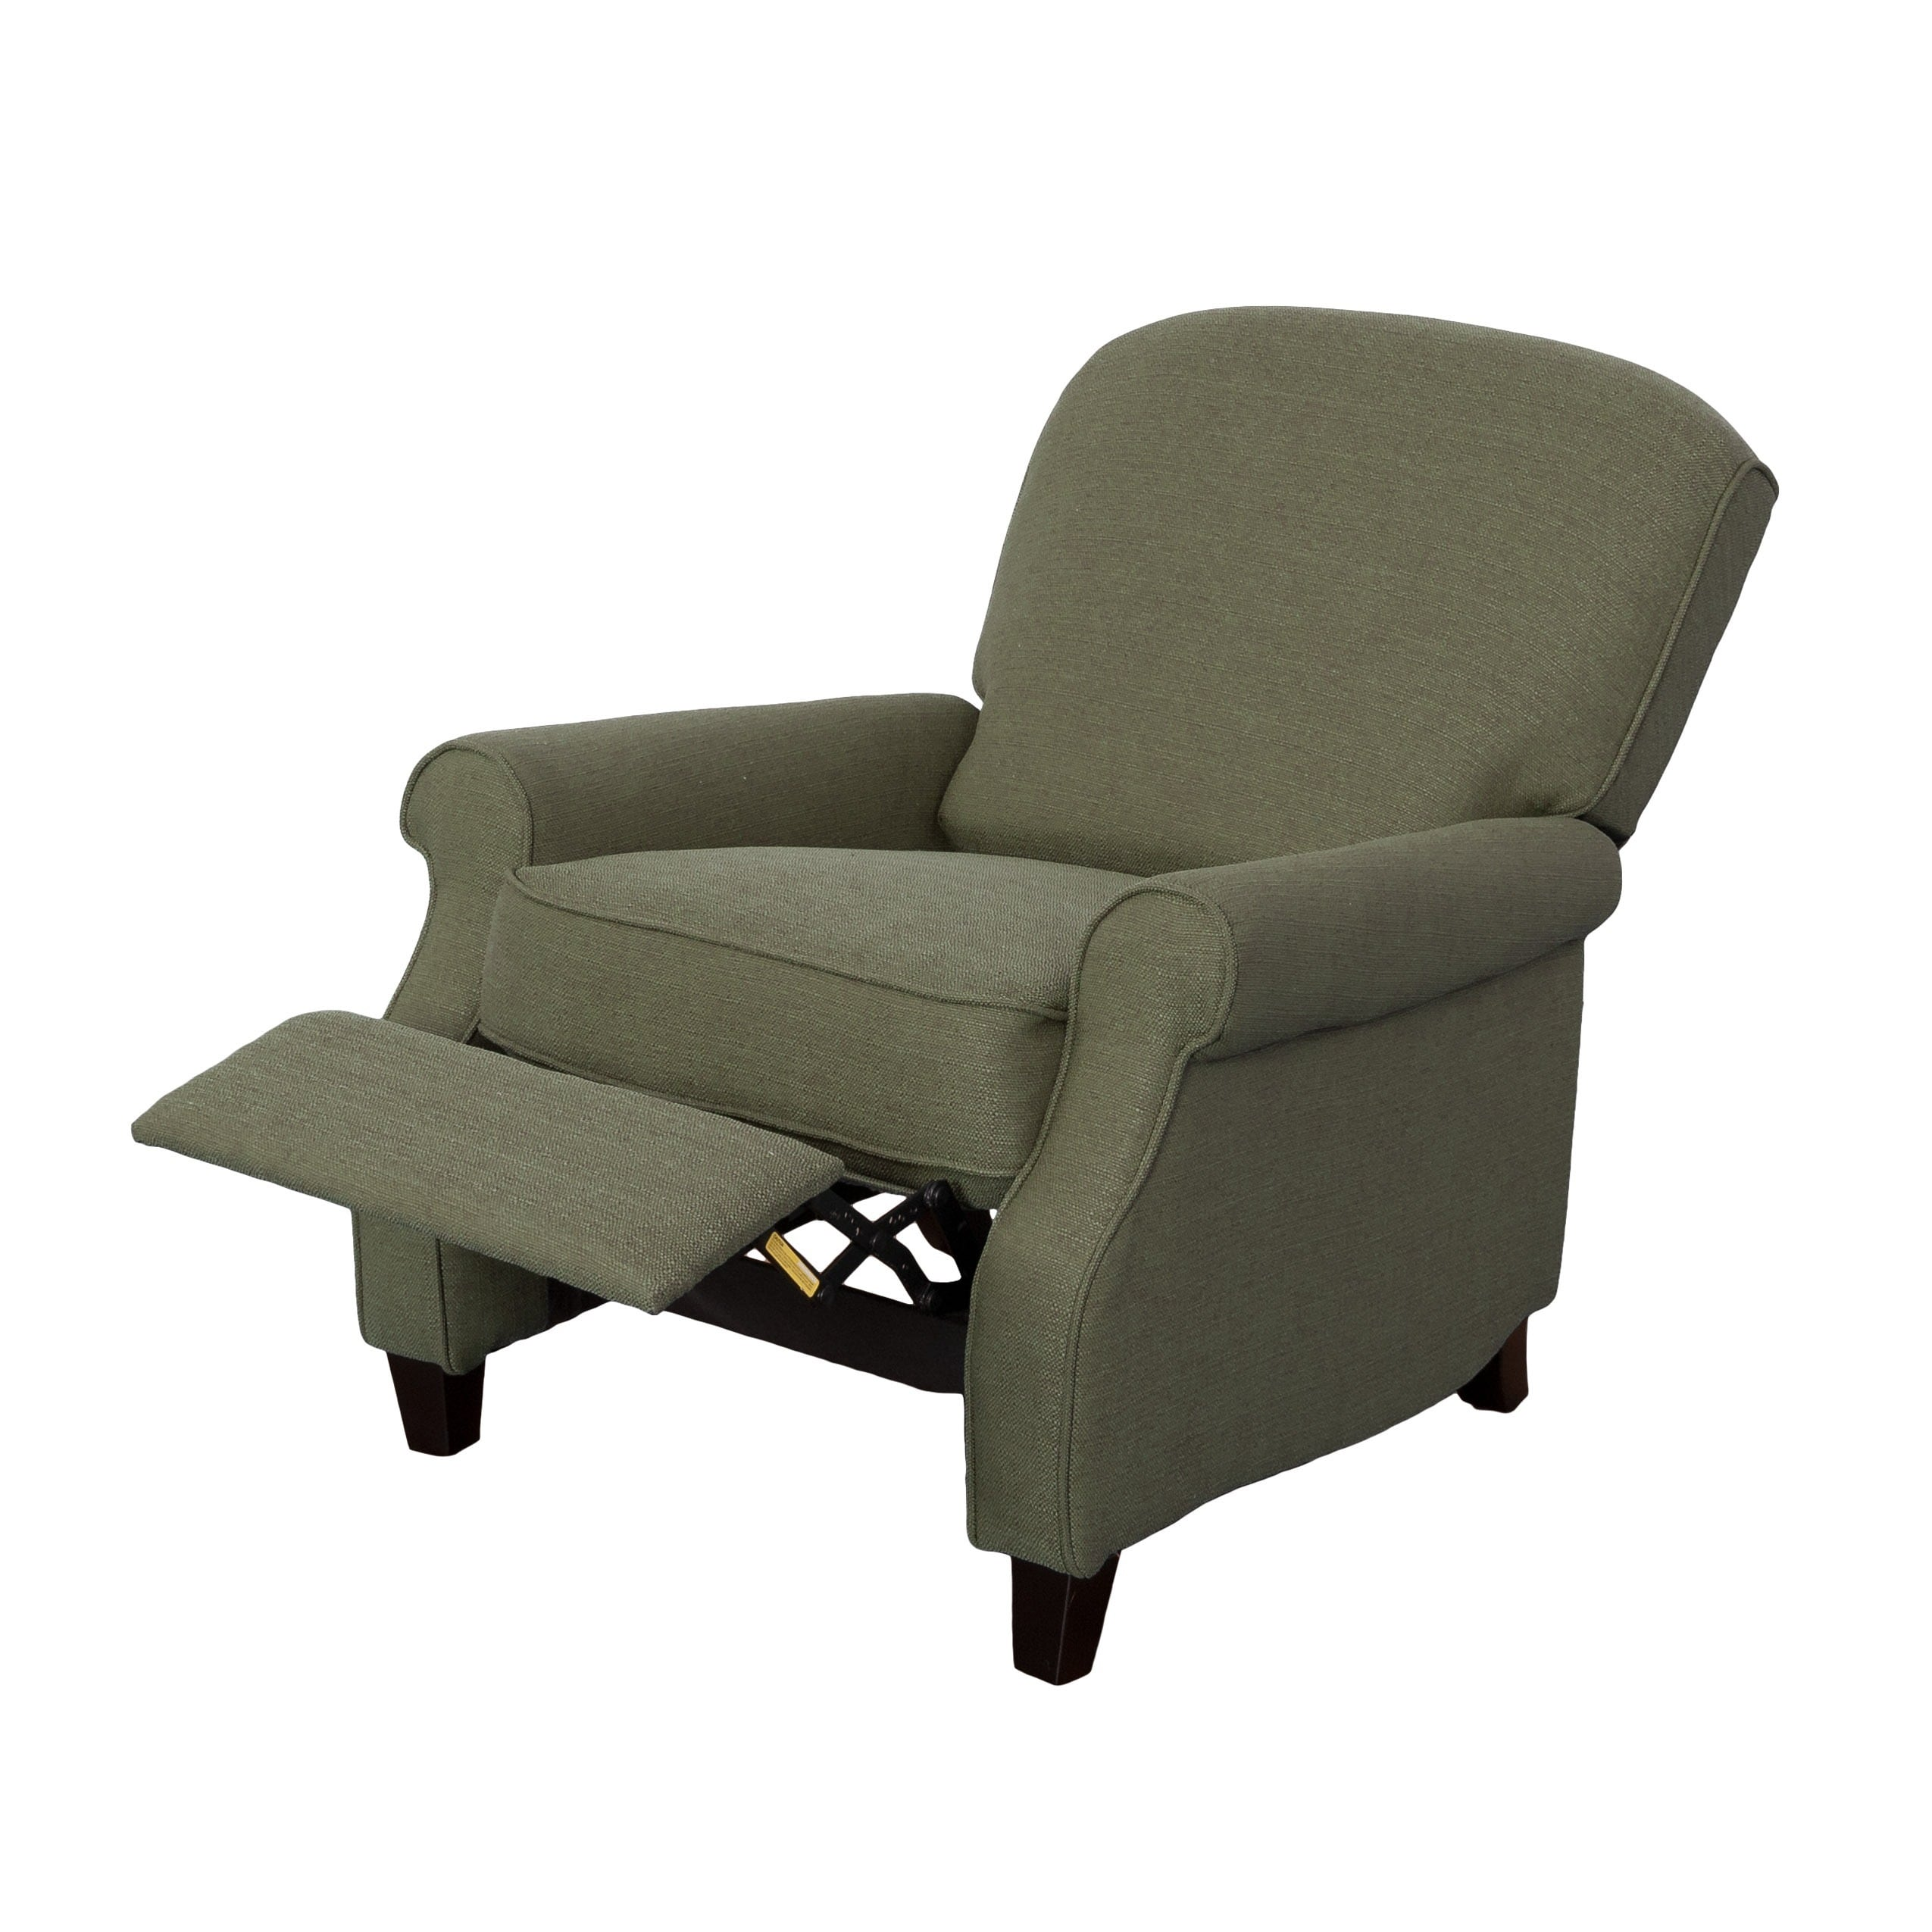 Shop CorLiving Noah Linen Fabric Recliner Armchair   Free Shipping Today    Overstock.com   13164458